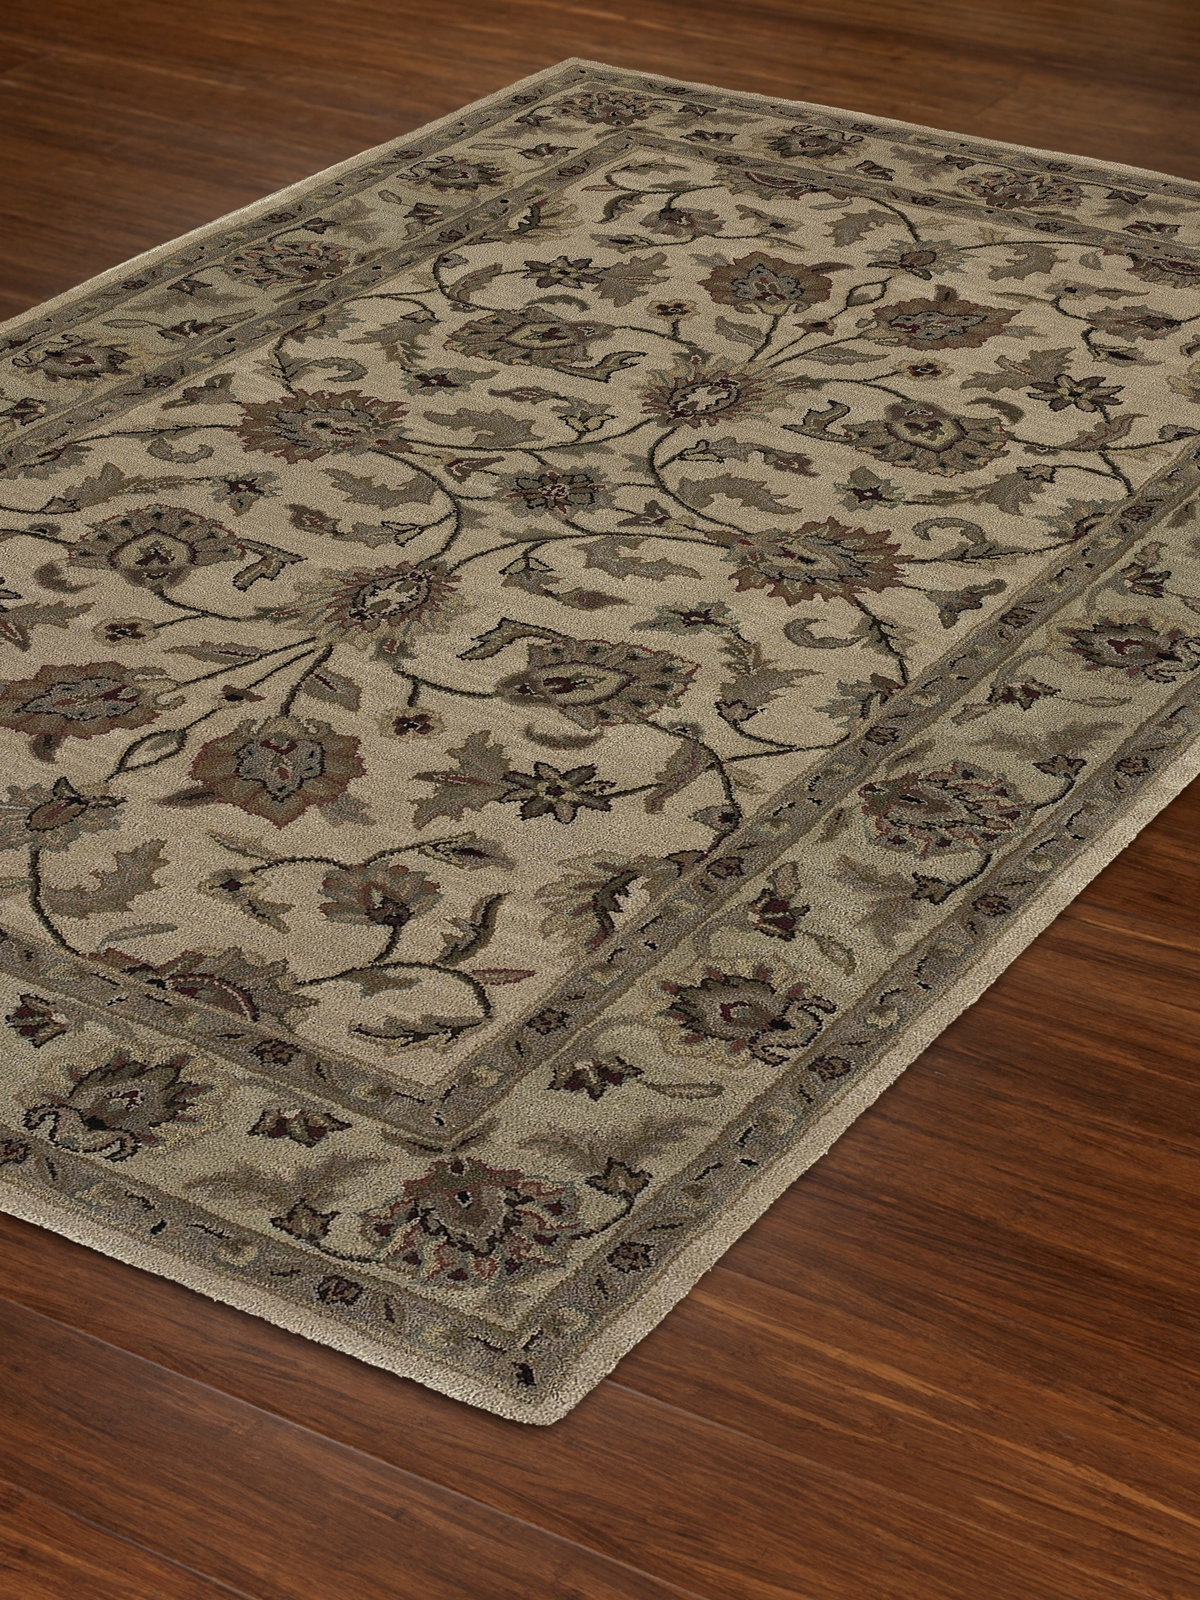 Dalyn Jewel Jw31 Ivory And Sage Area Rug Free Shipping